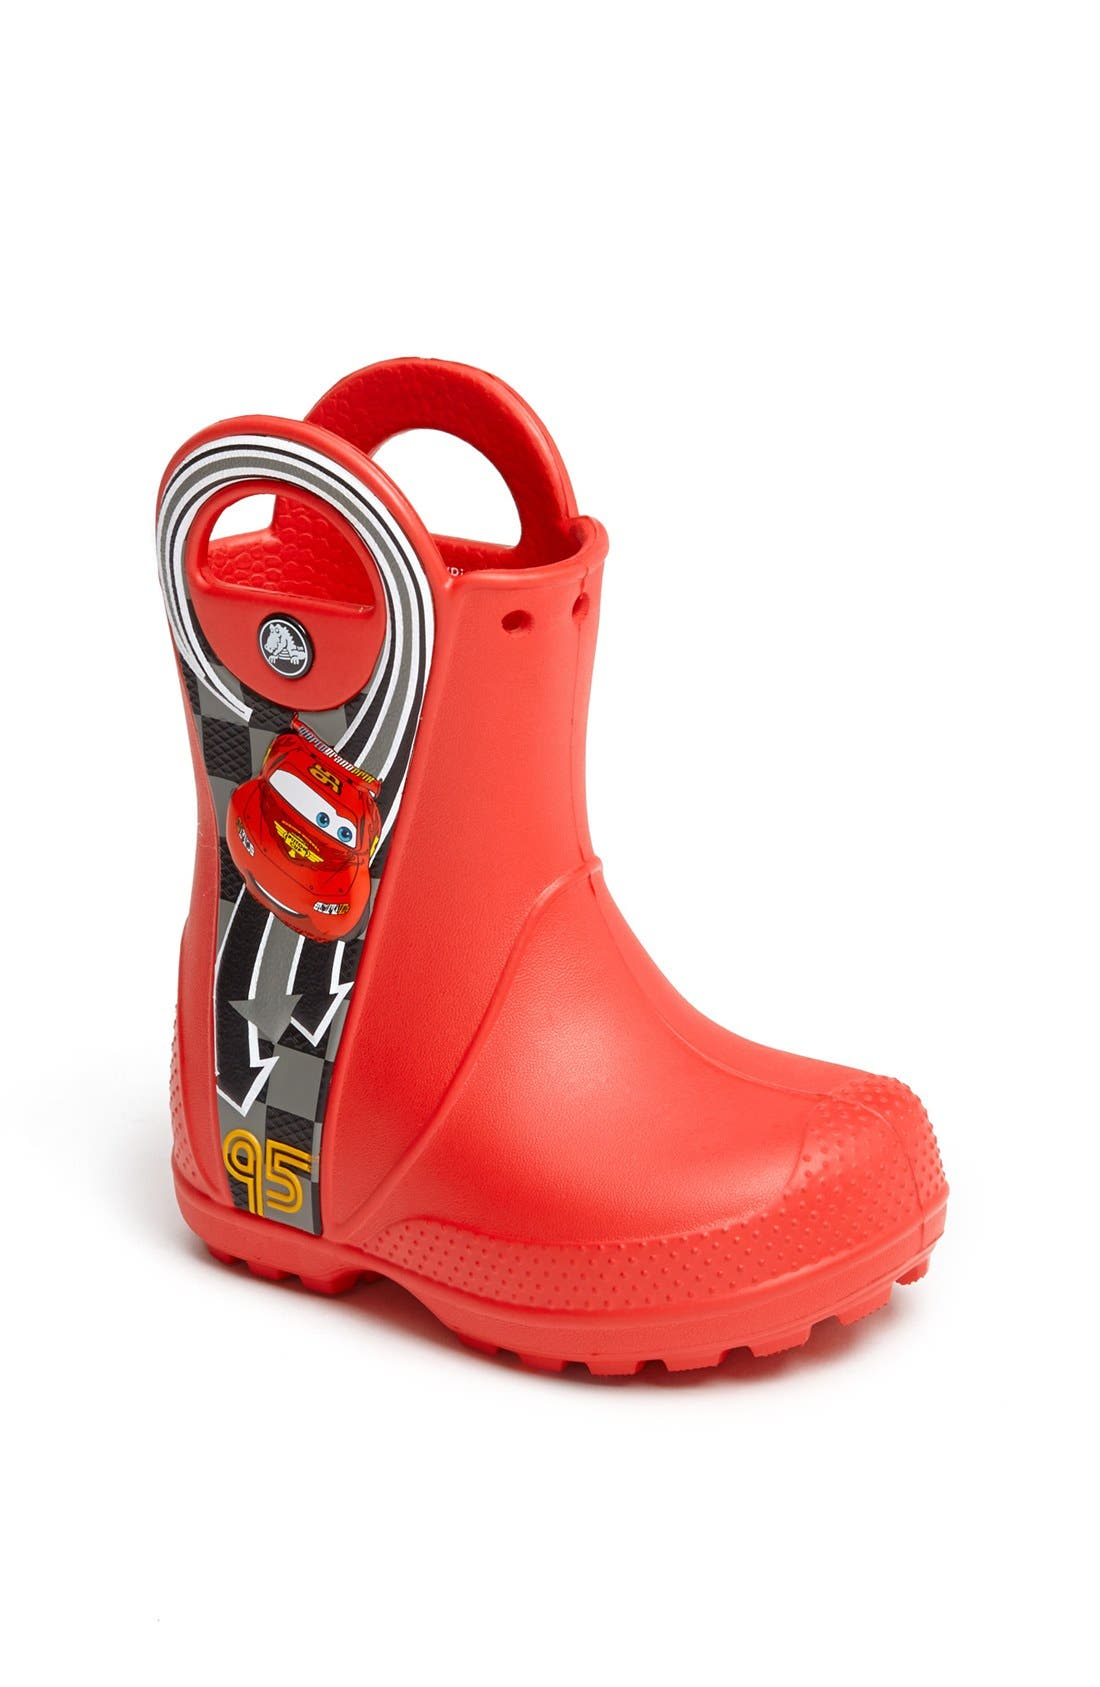 Alternate Image 1 Selected - CROCS™ 'Lightning McQueen' Rain Boot (Walker, Toddler & Little Kid)